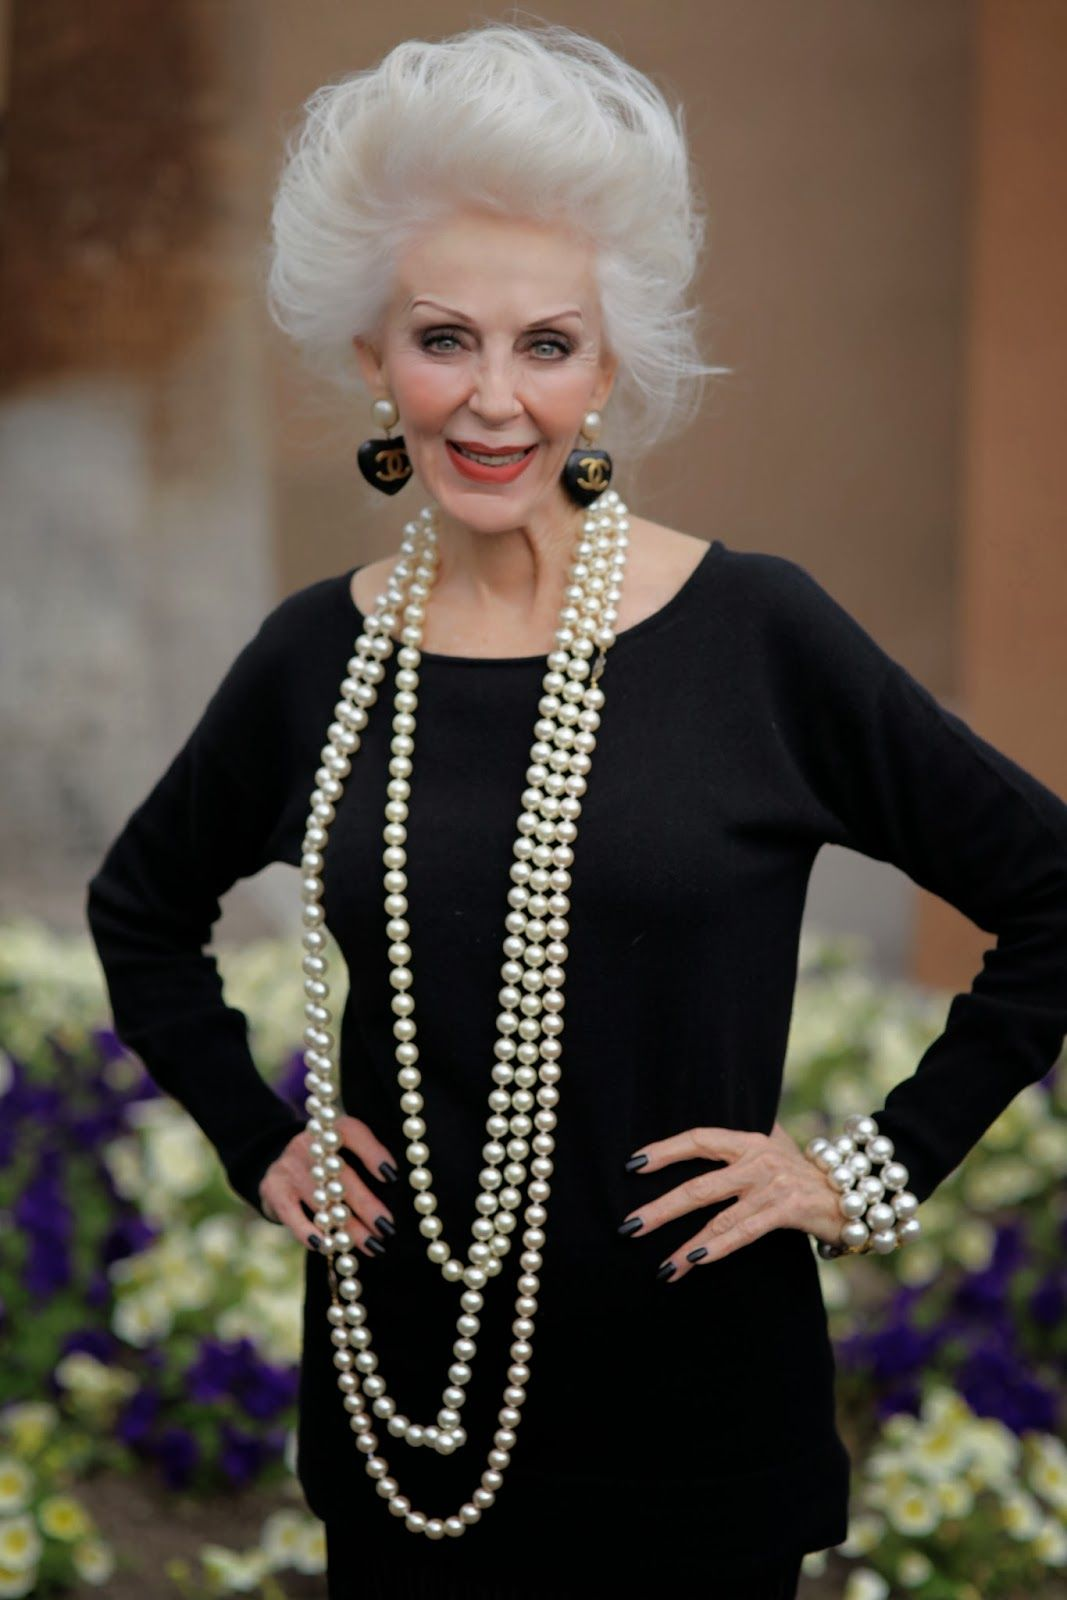 advanced style | wow!!! so cool ..fashion trends for women over 60